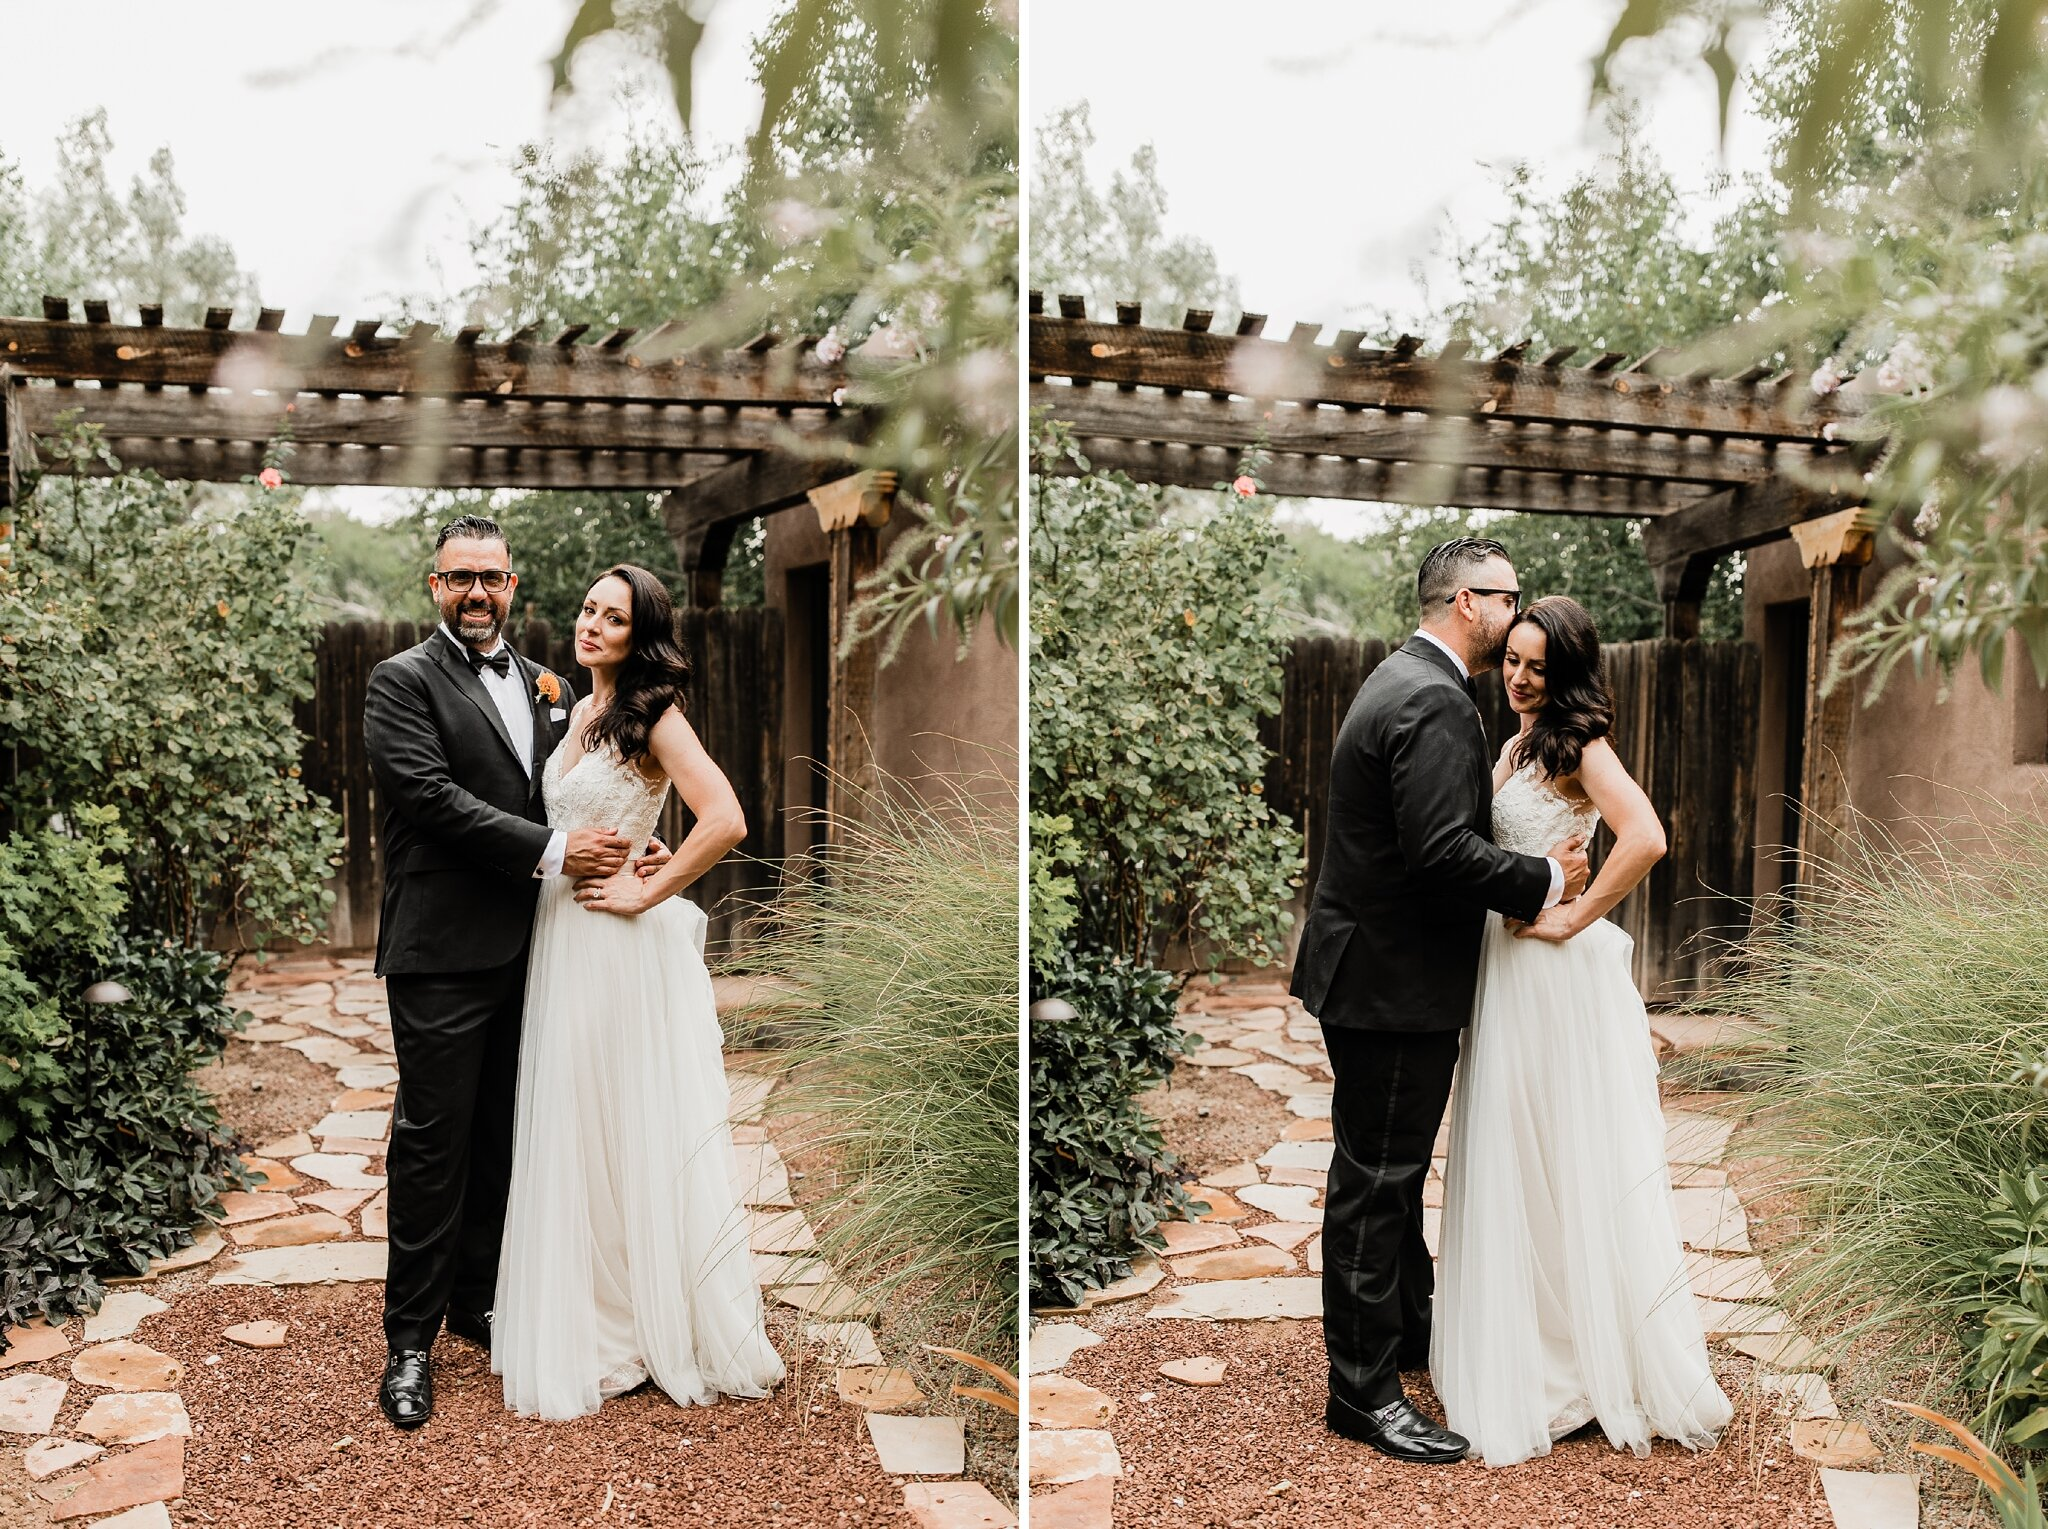 Alicia+lucia+photography+-+albuquerque+wedding+photographer+-+santa+fe+wedding+photography+-+new+mexico+wedding+photographer+-+new+mexico+wedding+-+bed+and+breakfast+wedding+-+sarabande+wedding+-+sarabande+bed+and+breakfast+wedding_0082.jpg